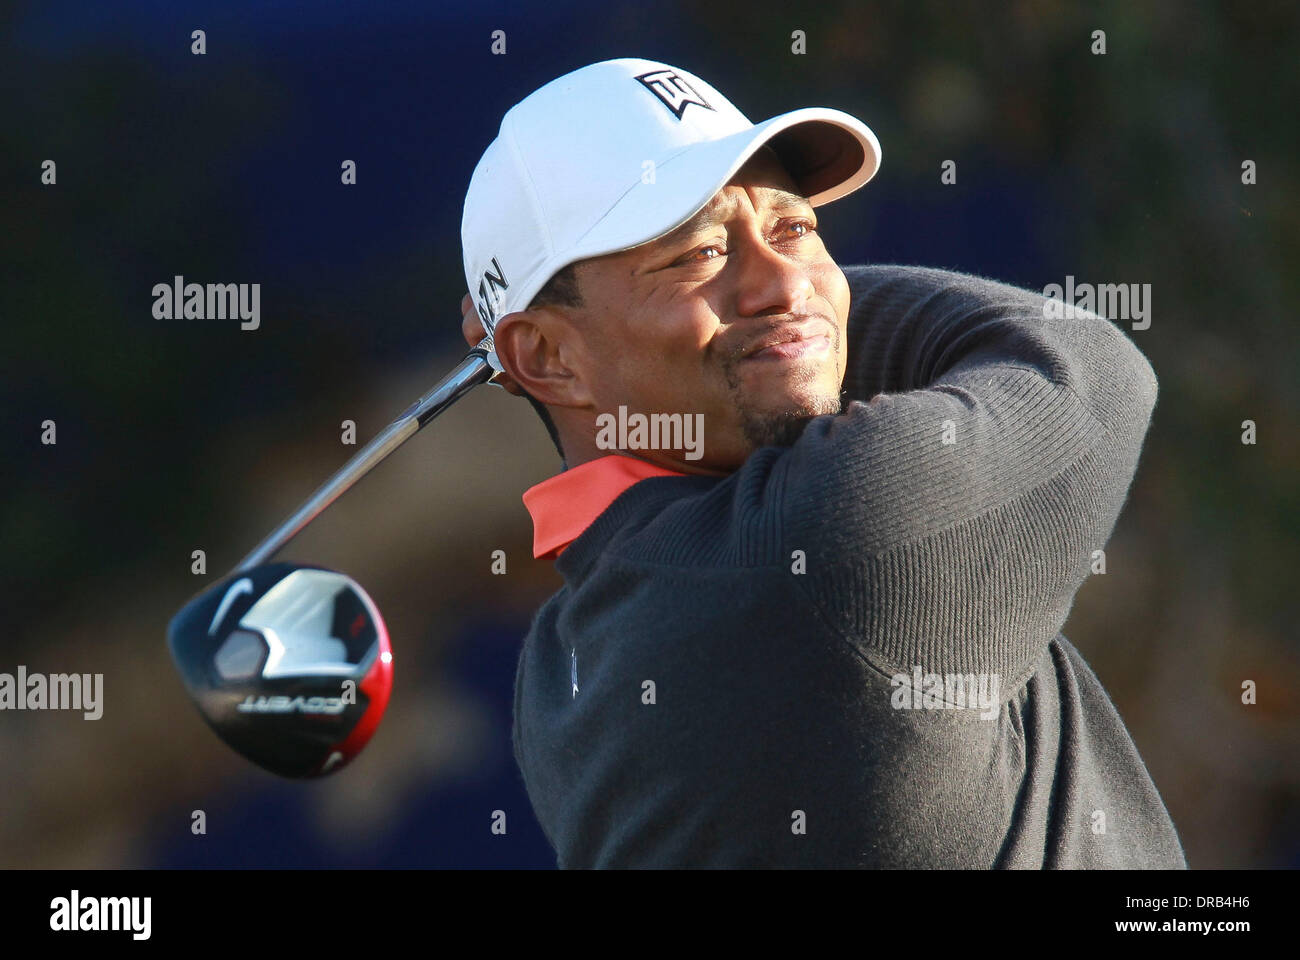 La Jolla, California, USA. 22nd Jan, 2014. TIGER WOODS drives the ball from the South Course 7th tee during the Pro-Am day of the Farmers Insurance Open at Torrey Pines Golf Course. Credit:  U-T San Diego/ZUMAPRESS.com/Alamy Live News - Stock Image